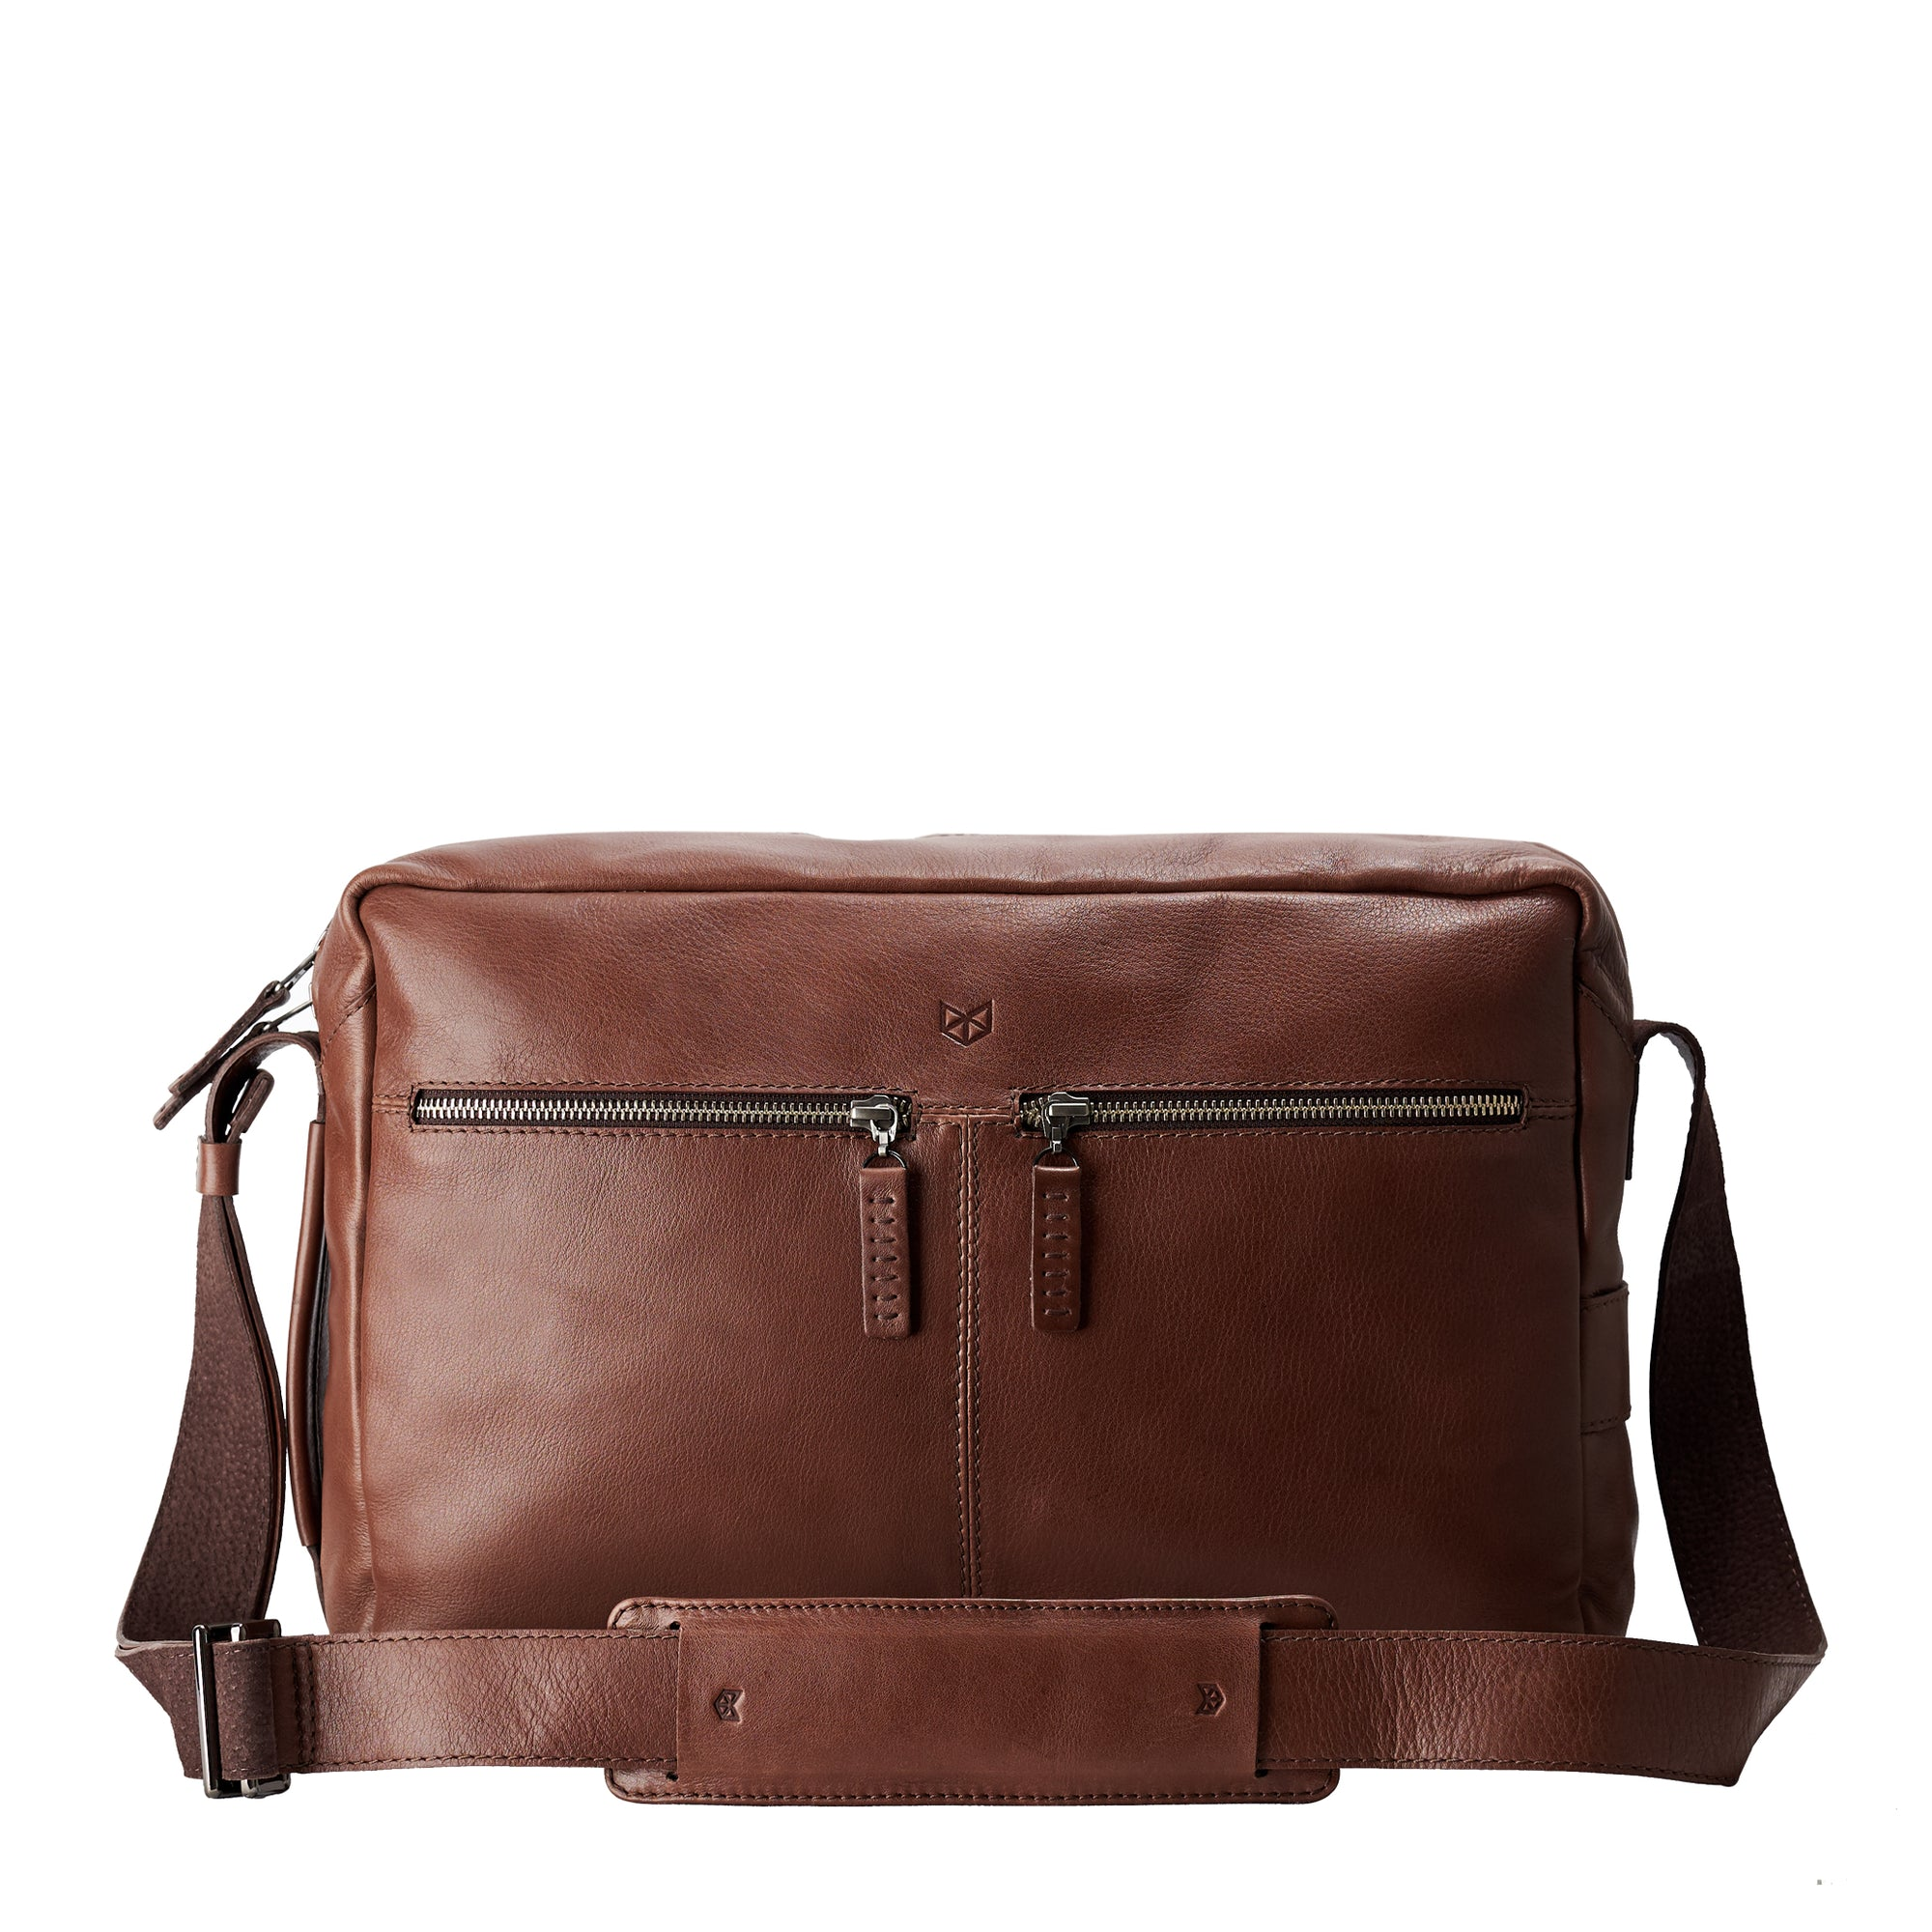 Addox Messenger Bag